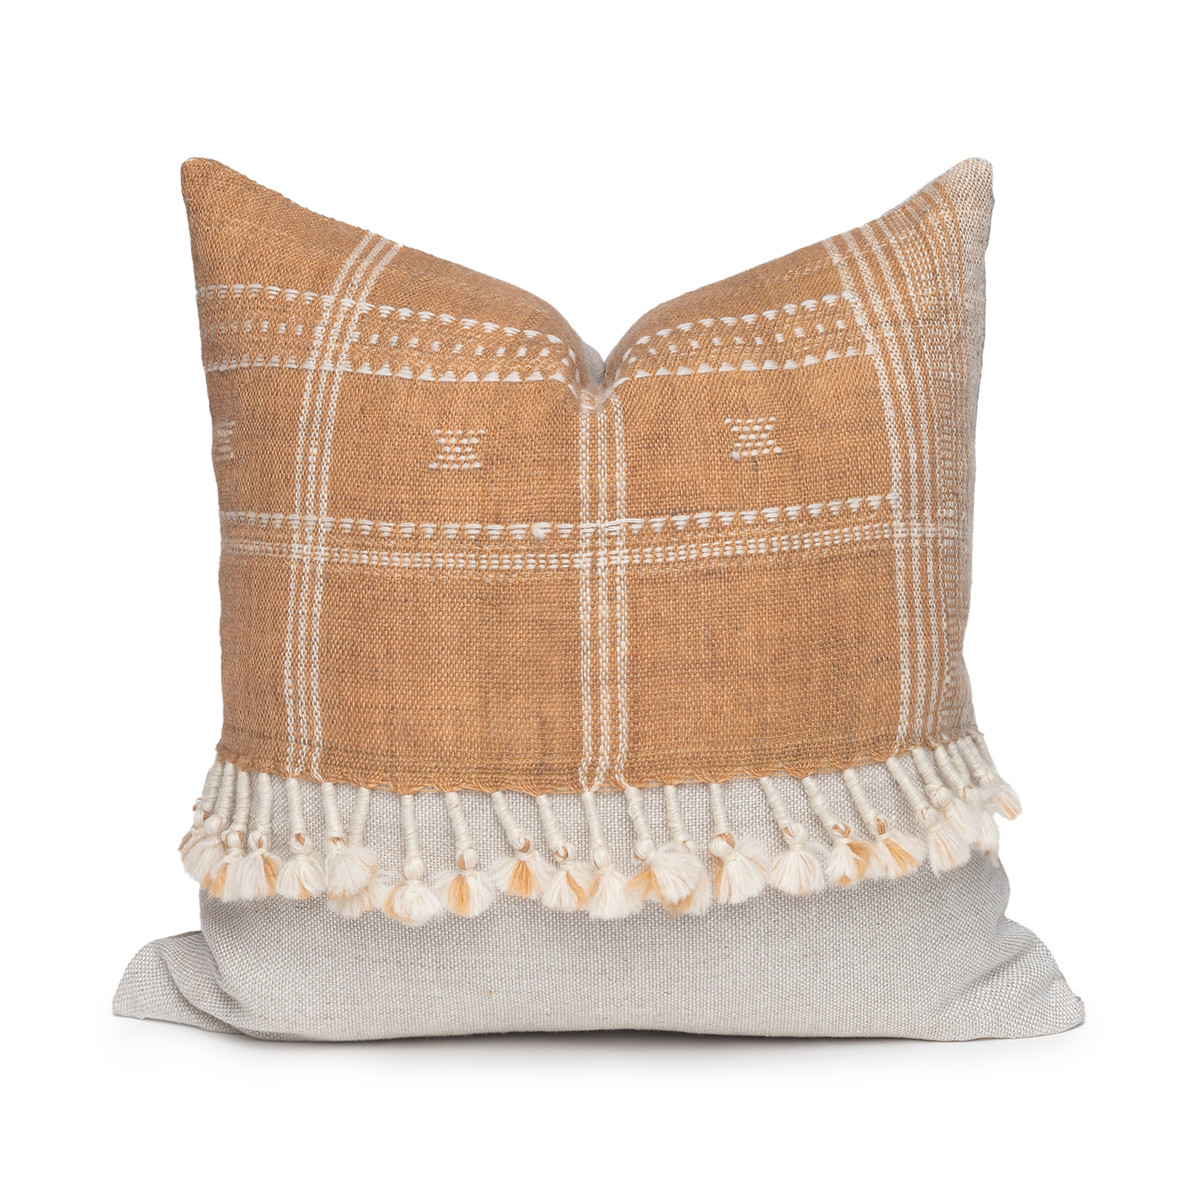 Morgan Handspun Indian Wool Copper and Ivory Stripe Pillow- 18 x 18 - Front